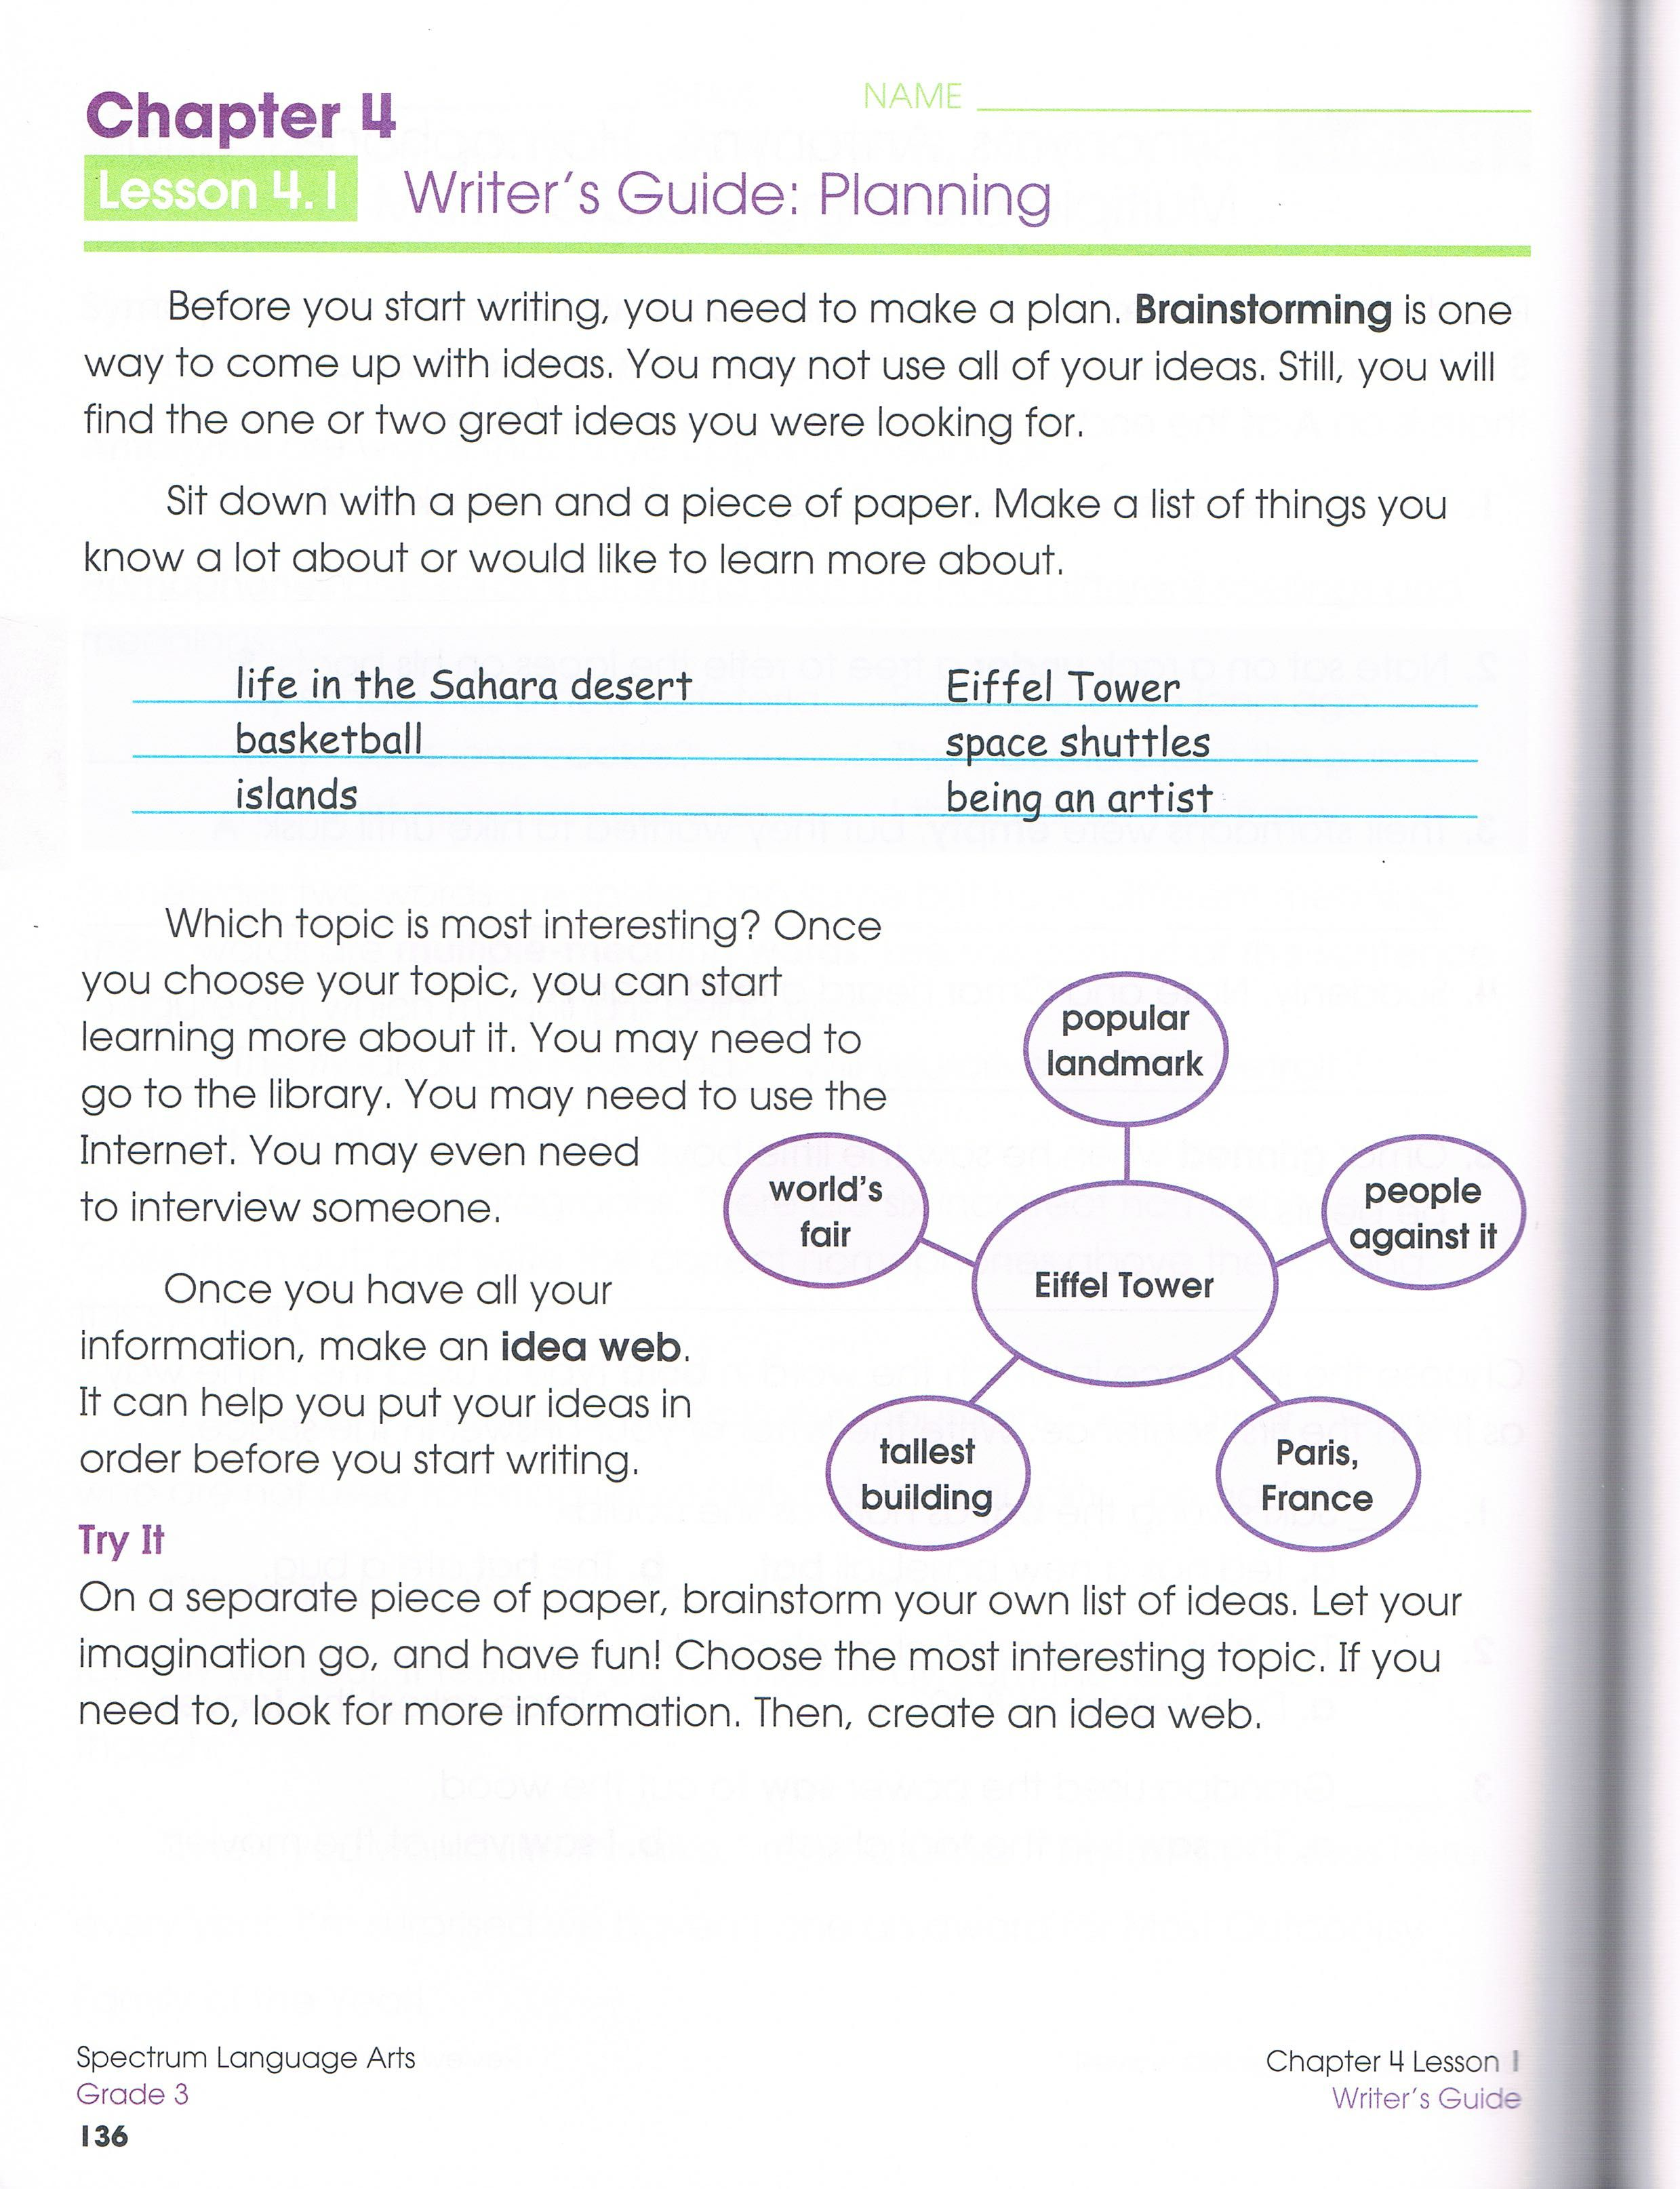 Pin By Perri Arens On Lae Ready Resources Notebook Start Writing How To Plan Lesson [ 3228 x 2478 Pixel ]